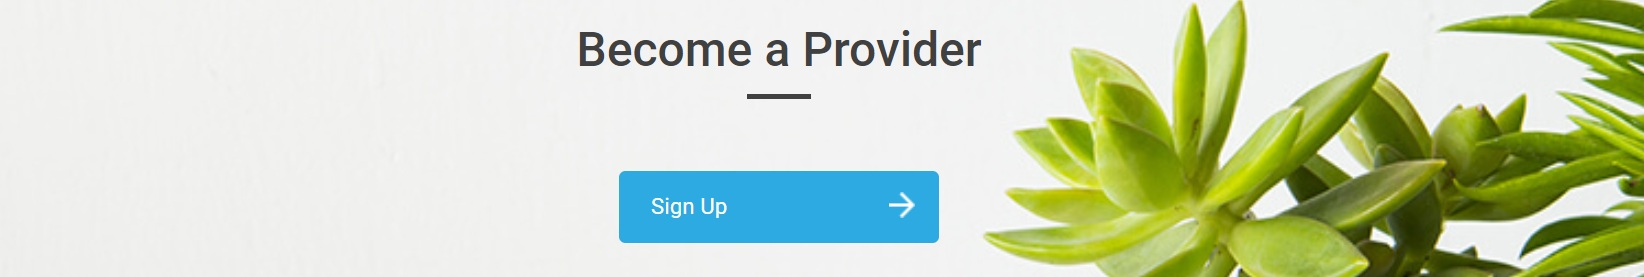 Become+a+Provider+SignUp.jpg